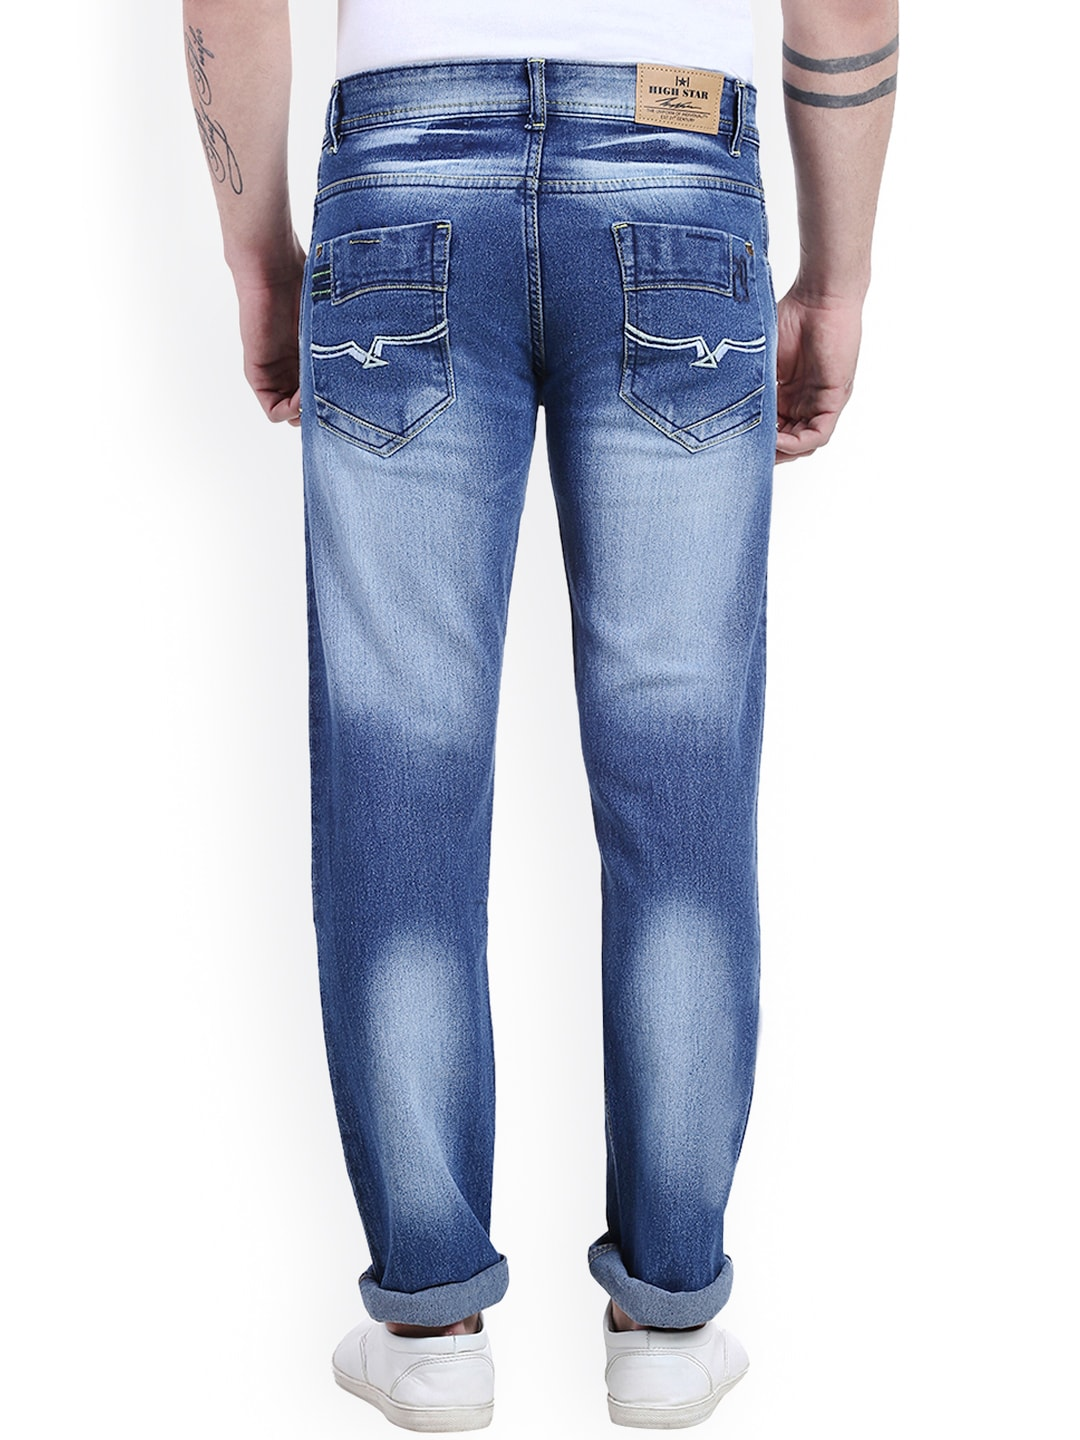 High Waisted Jeans Men - Xtellar Jeans